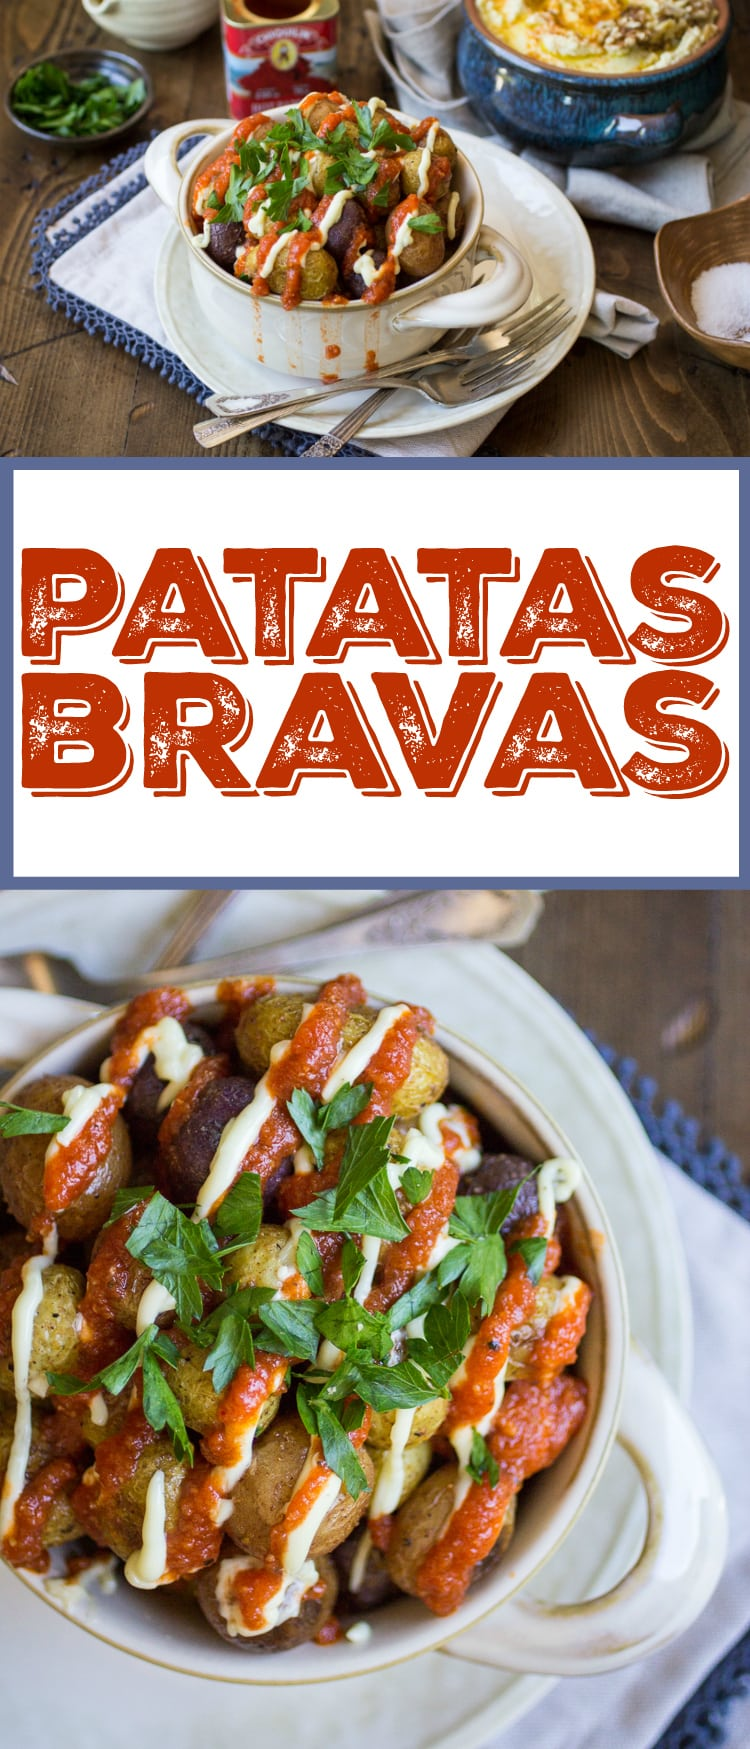 These Patatas Bravas are roasted, not fried, which makes them both easier and healthier! You'll love the easy tomato sauce -- the leftovers taste great on just about everything!